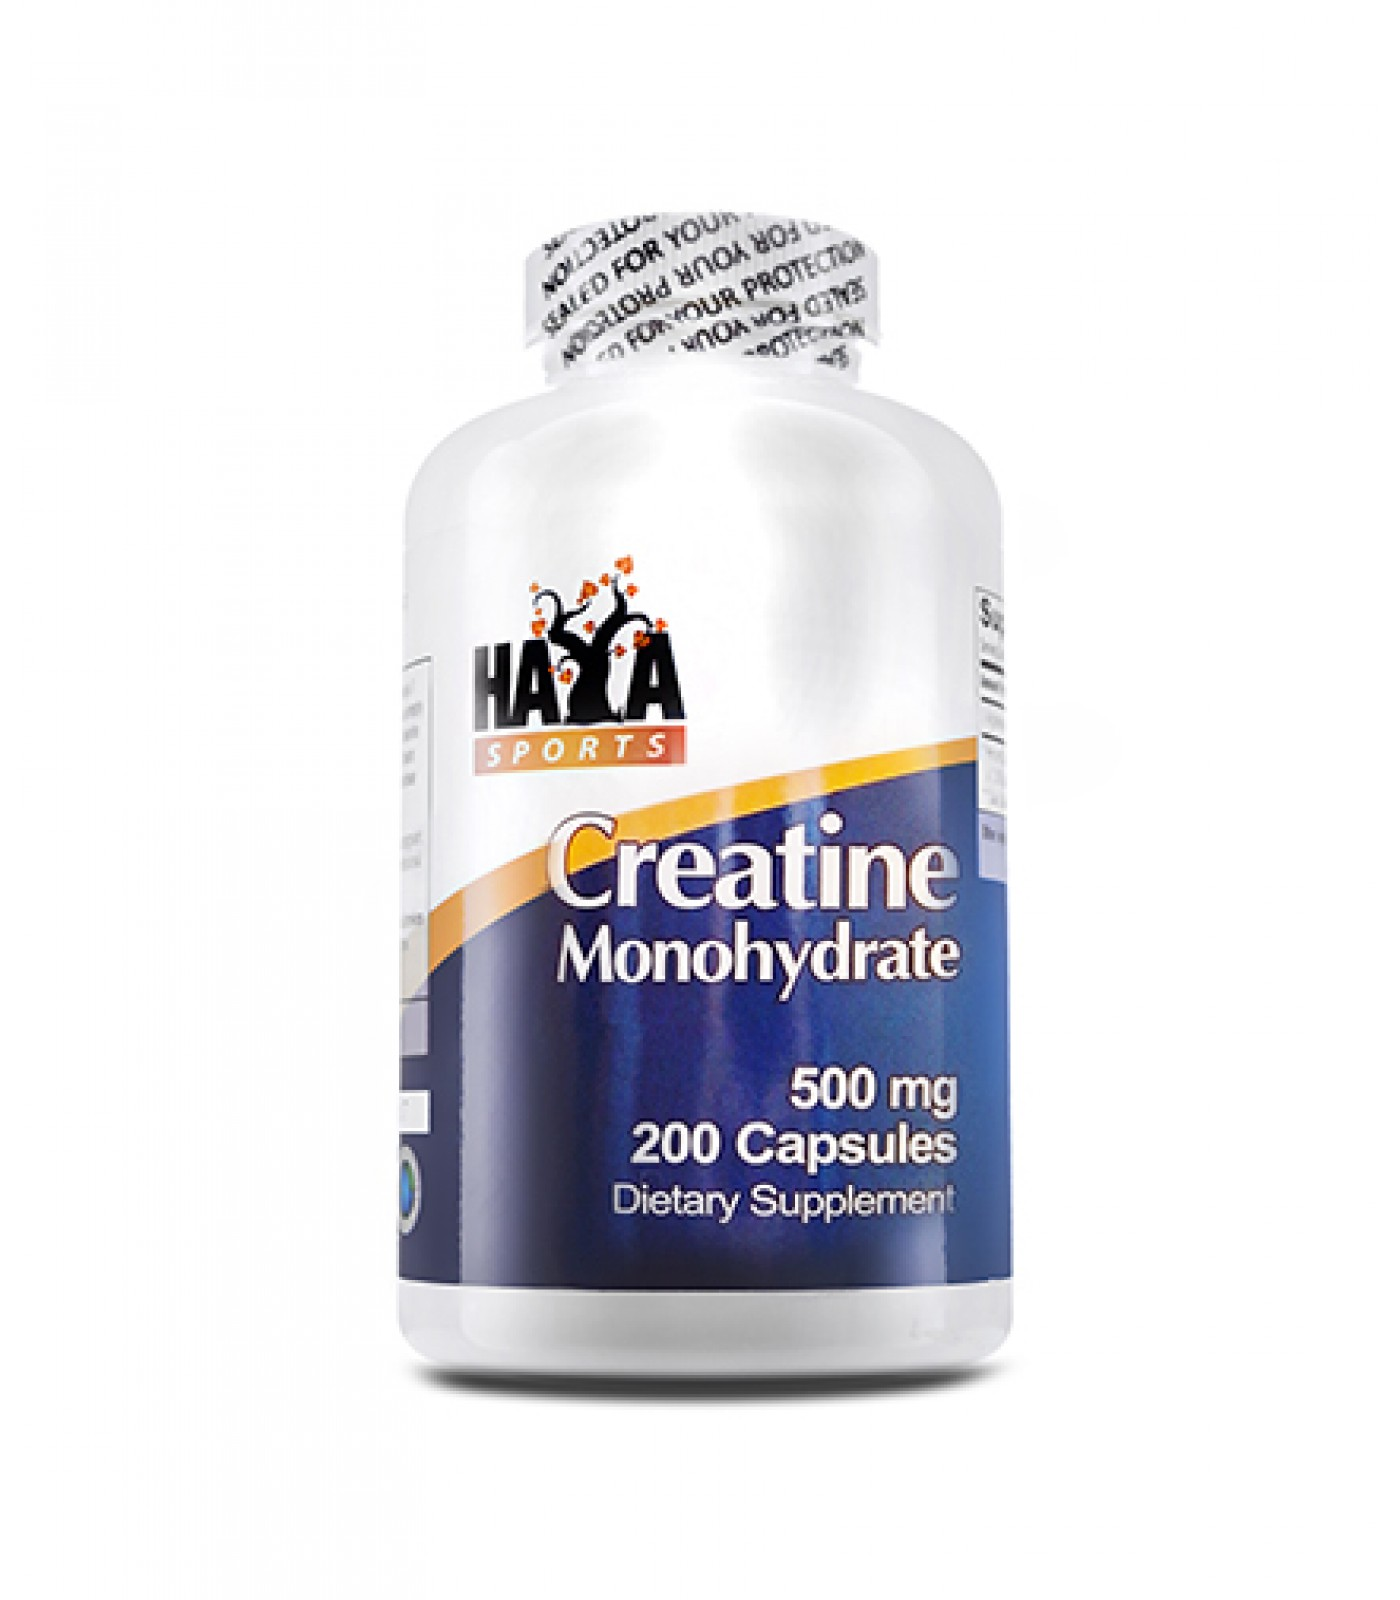 Haya Labs - Creatine Monohydrate 500mg. / 200 Caps.